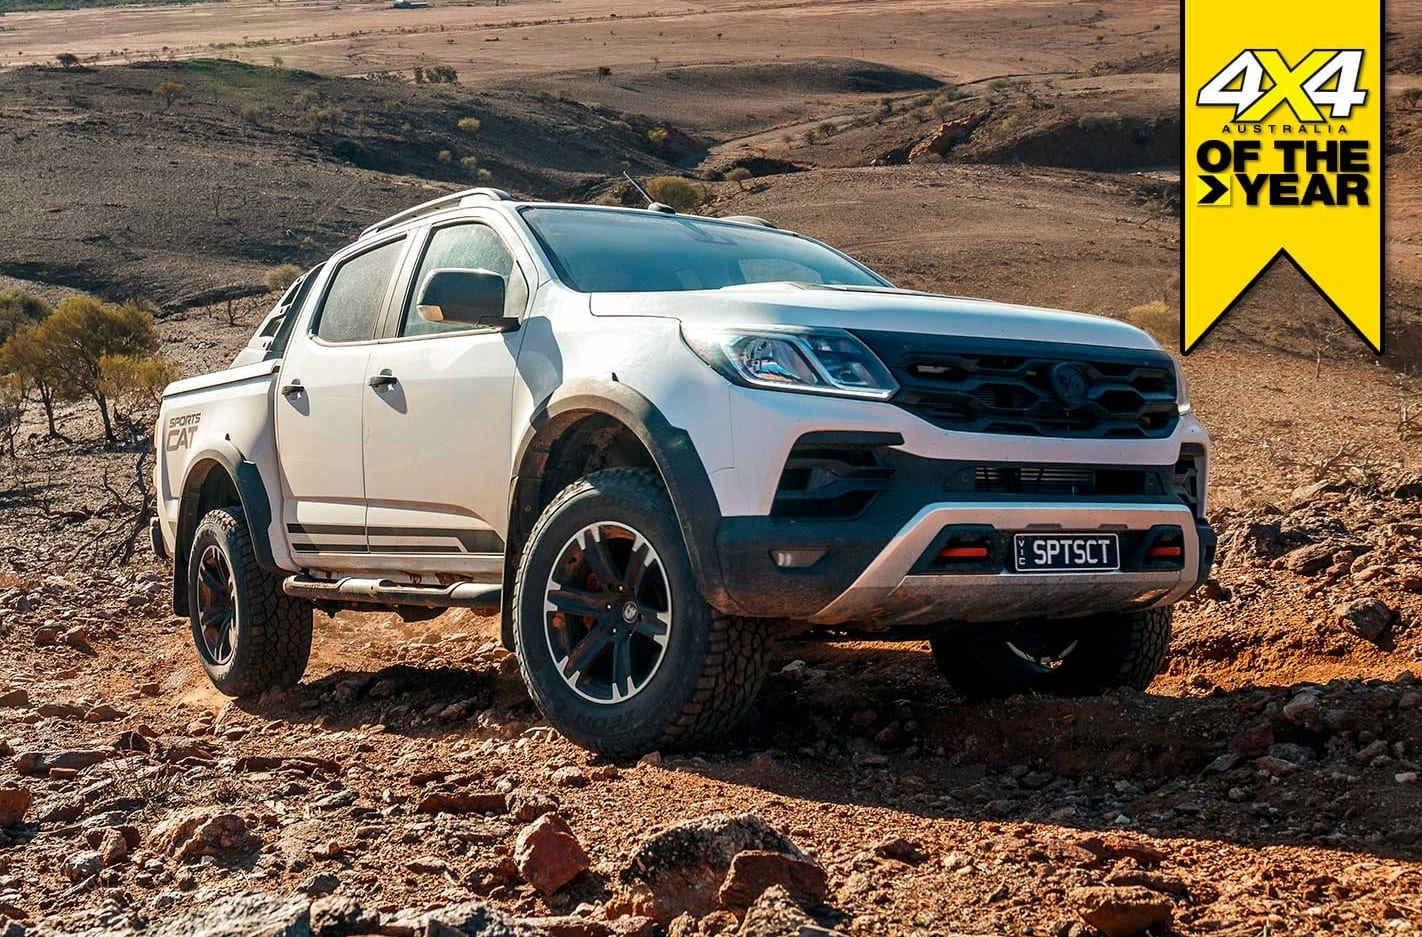 HSV Colorado Sportscat+ review 4x4 of the Year 2019